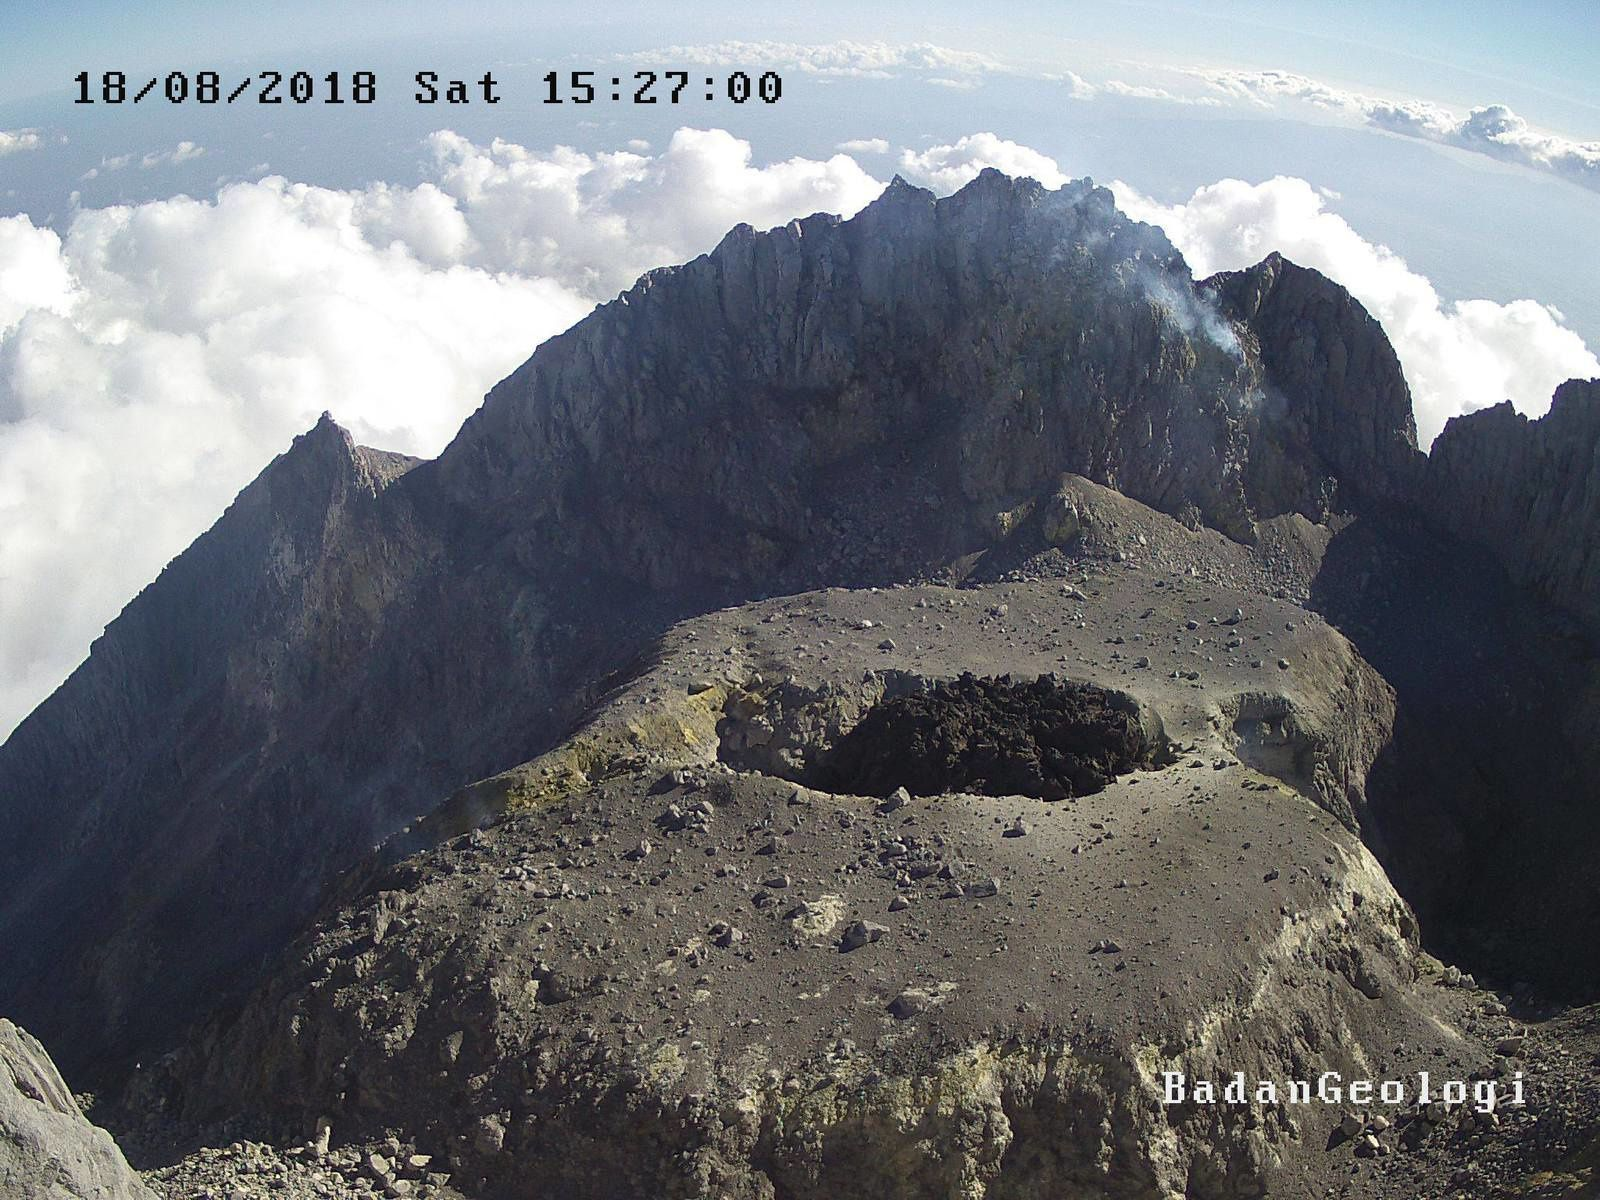 Merapi - the old dome fractured on 12.08.2018 and the new dome on 18.08.2018 - Webcams PVMBG